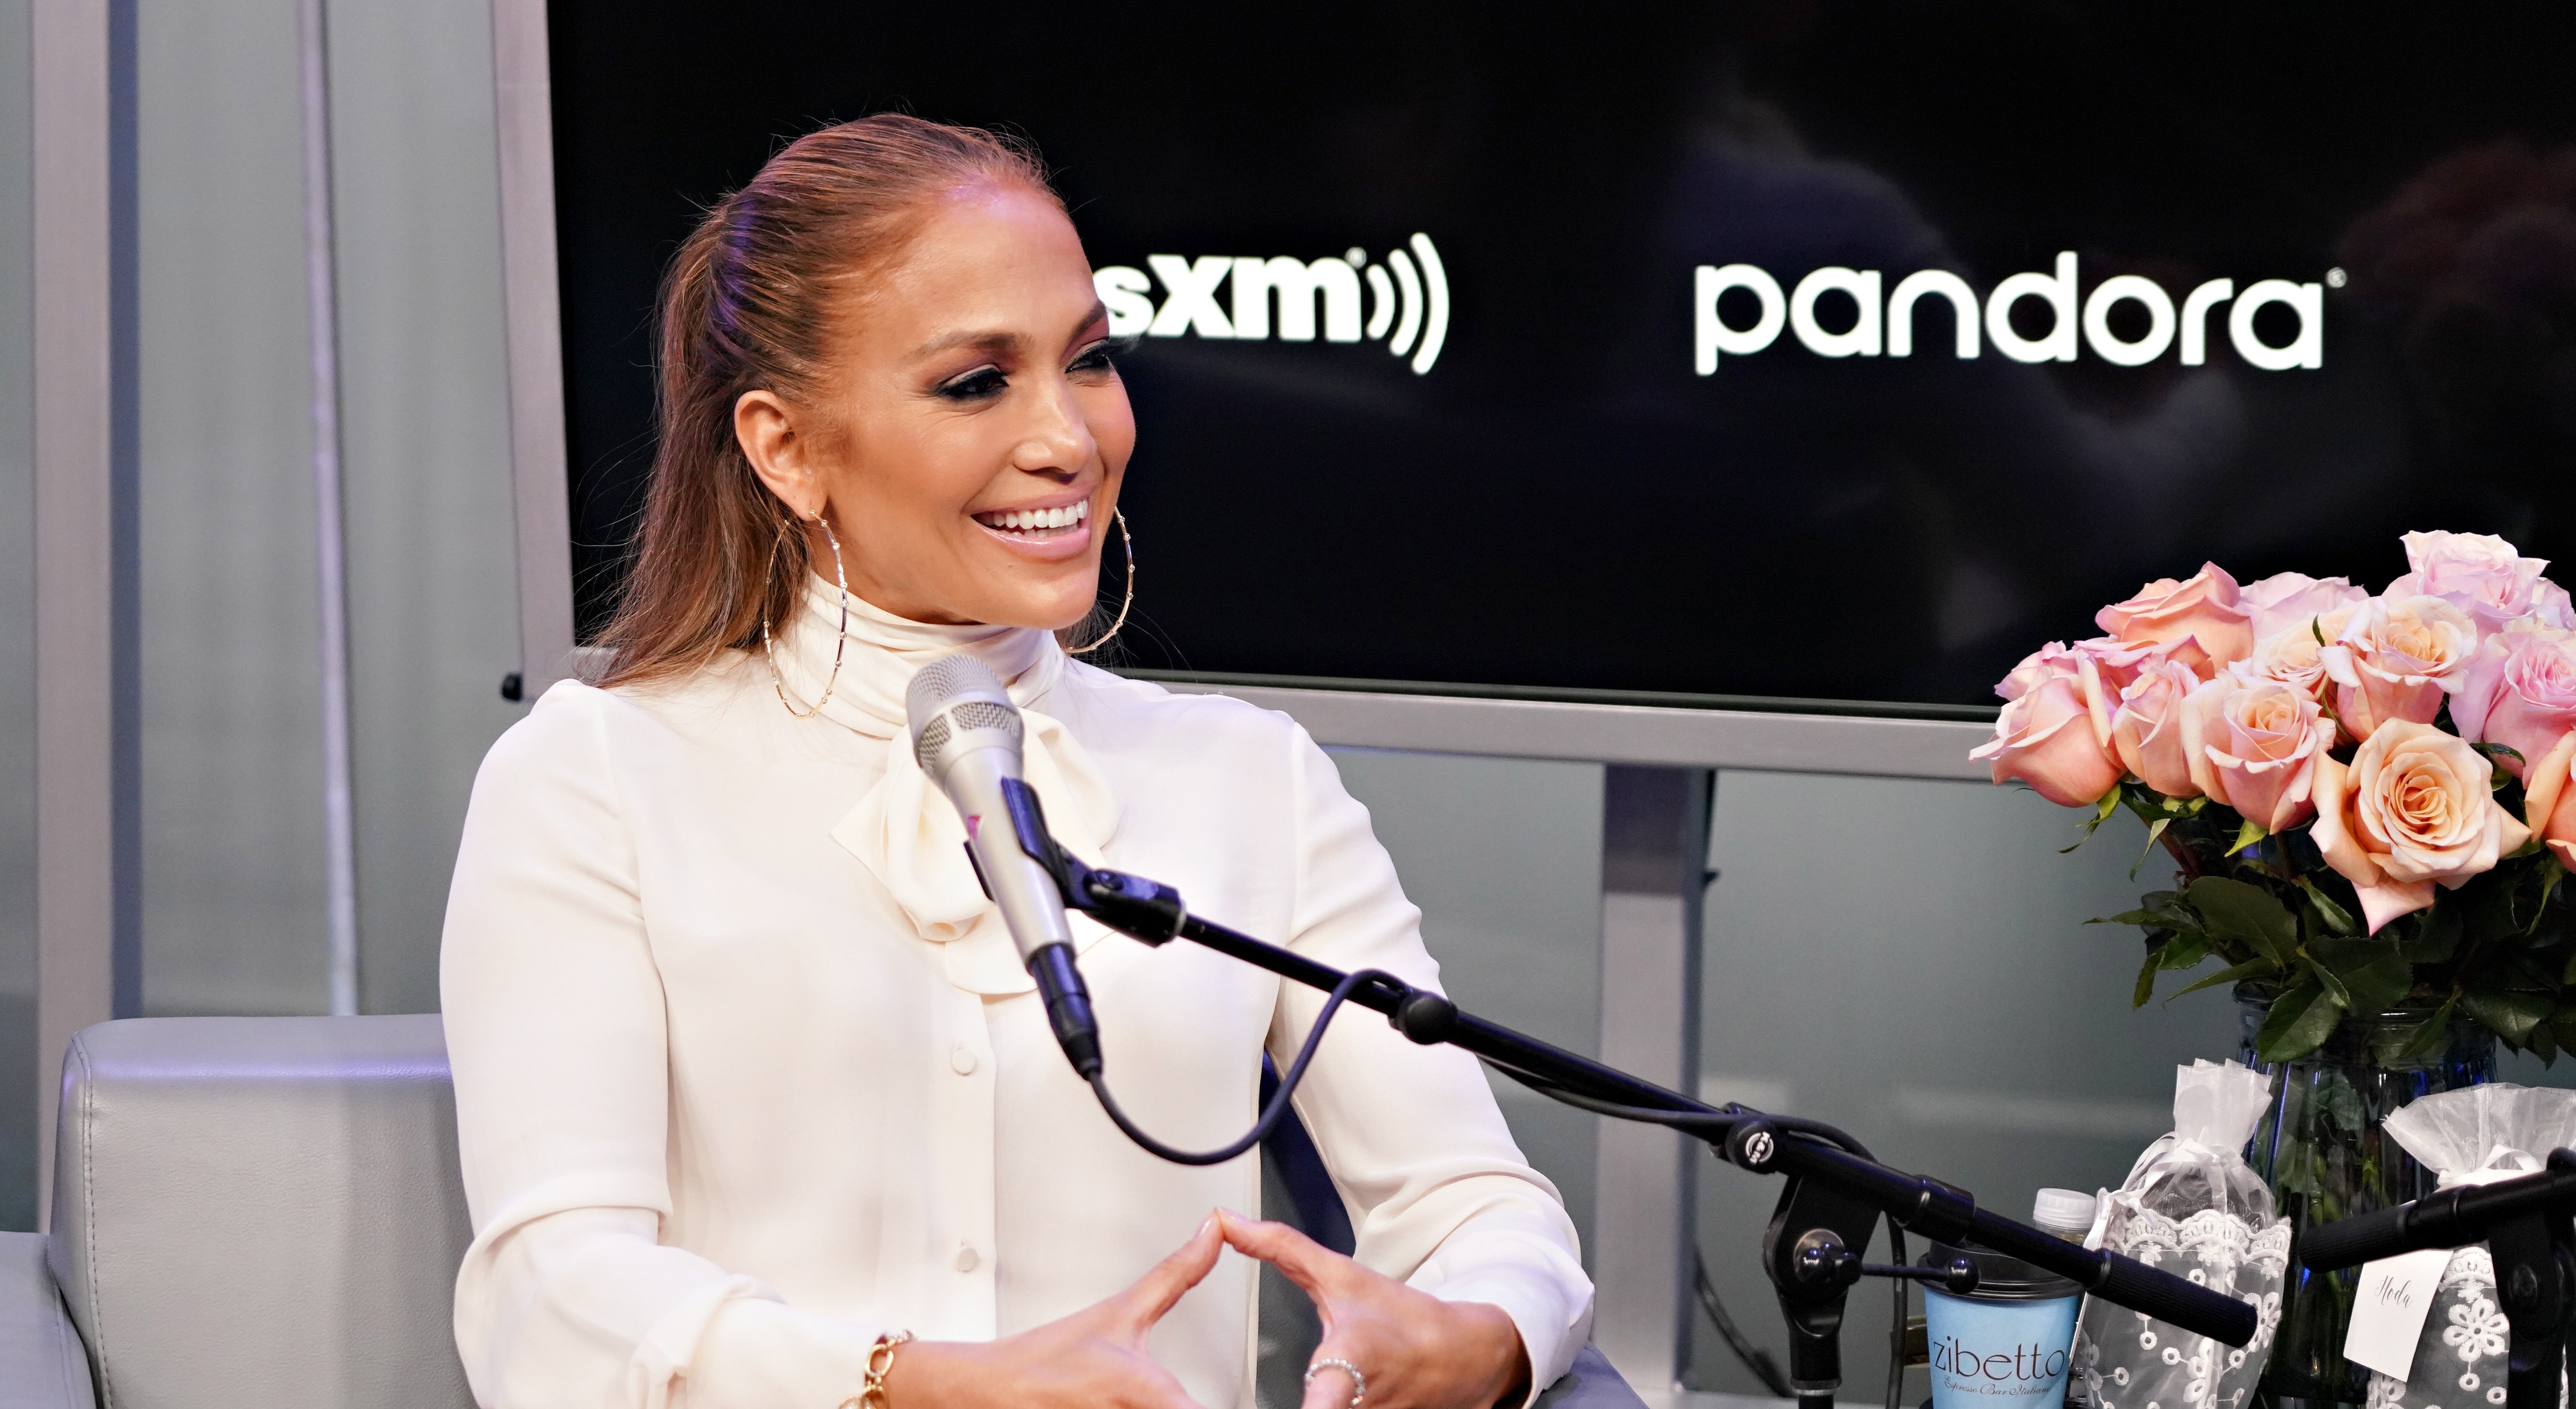 Jennifer Lopez Cried After Getting Oscar Buzz for 'Hustlers' Role